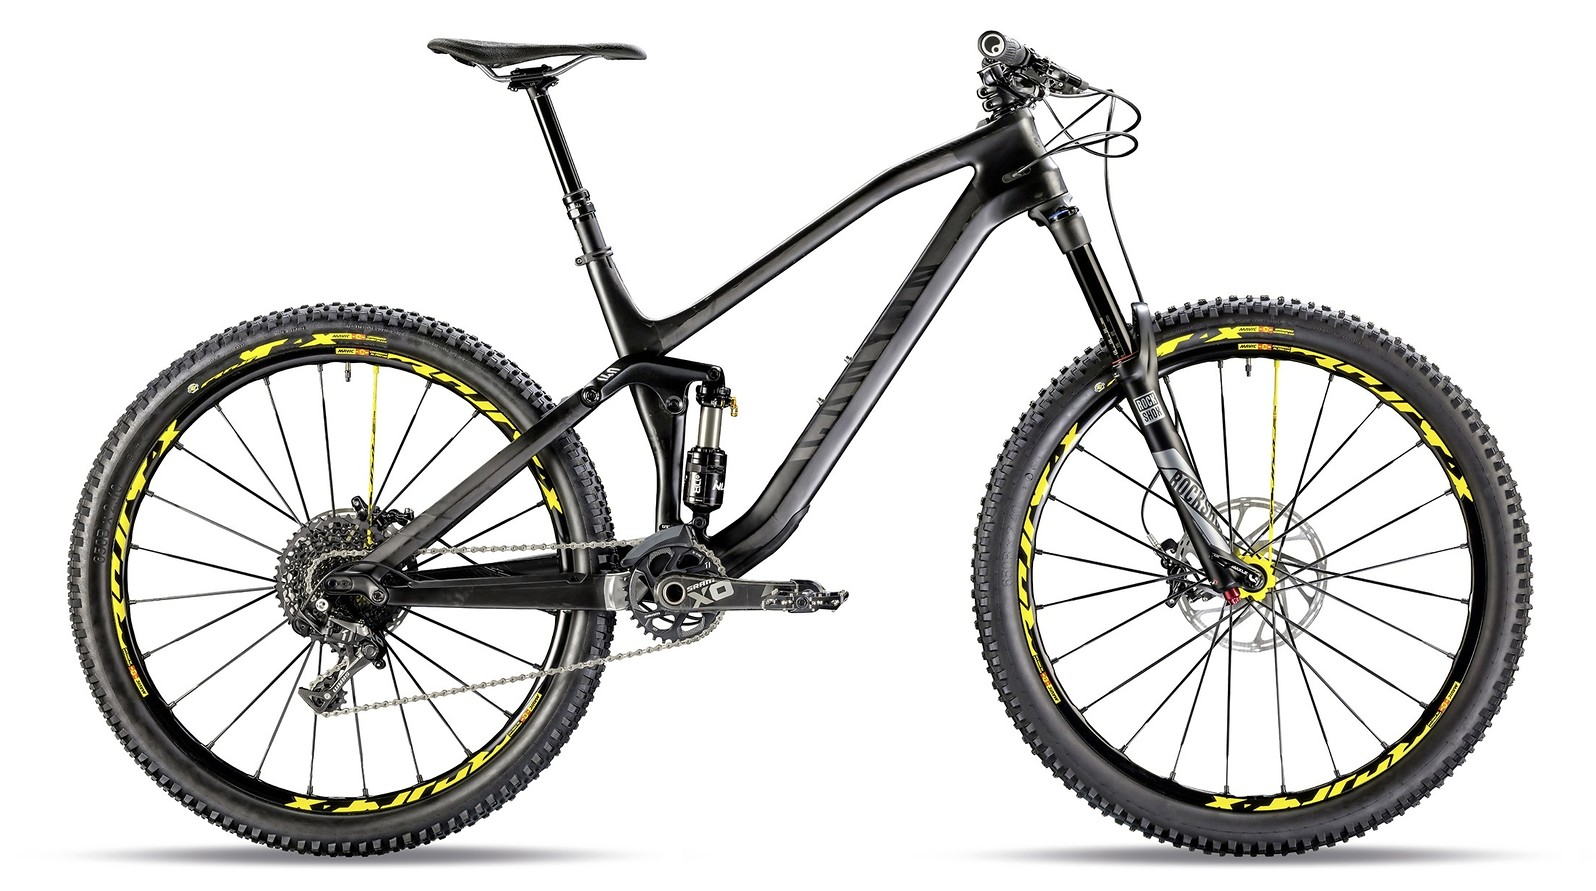 2016 Canyon Spectral CF 9.0 EX Bike